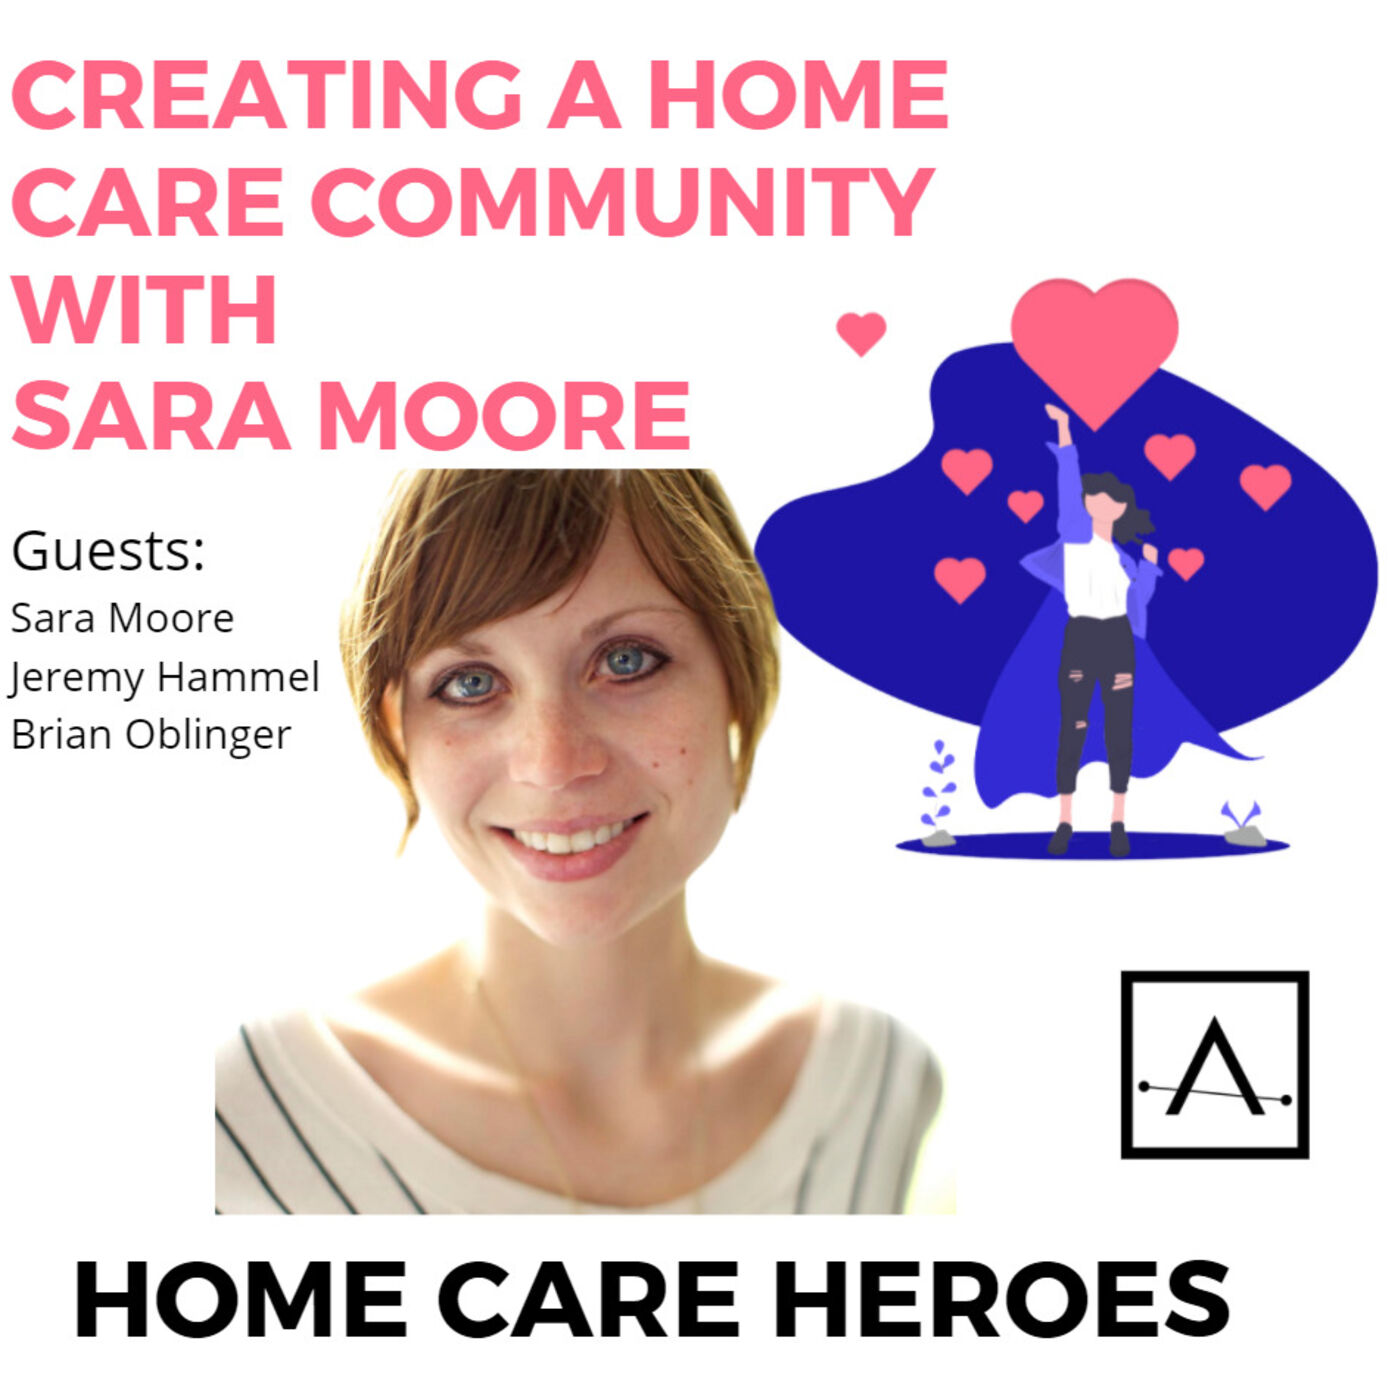 Creating A Home Care Community with Sara Moore, Jeremy Hammel and Brian Oblinger (rebroadcast)